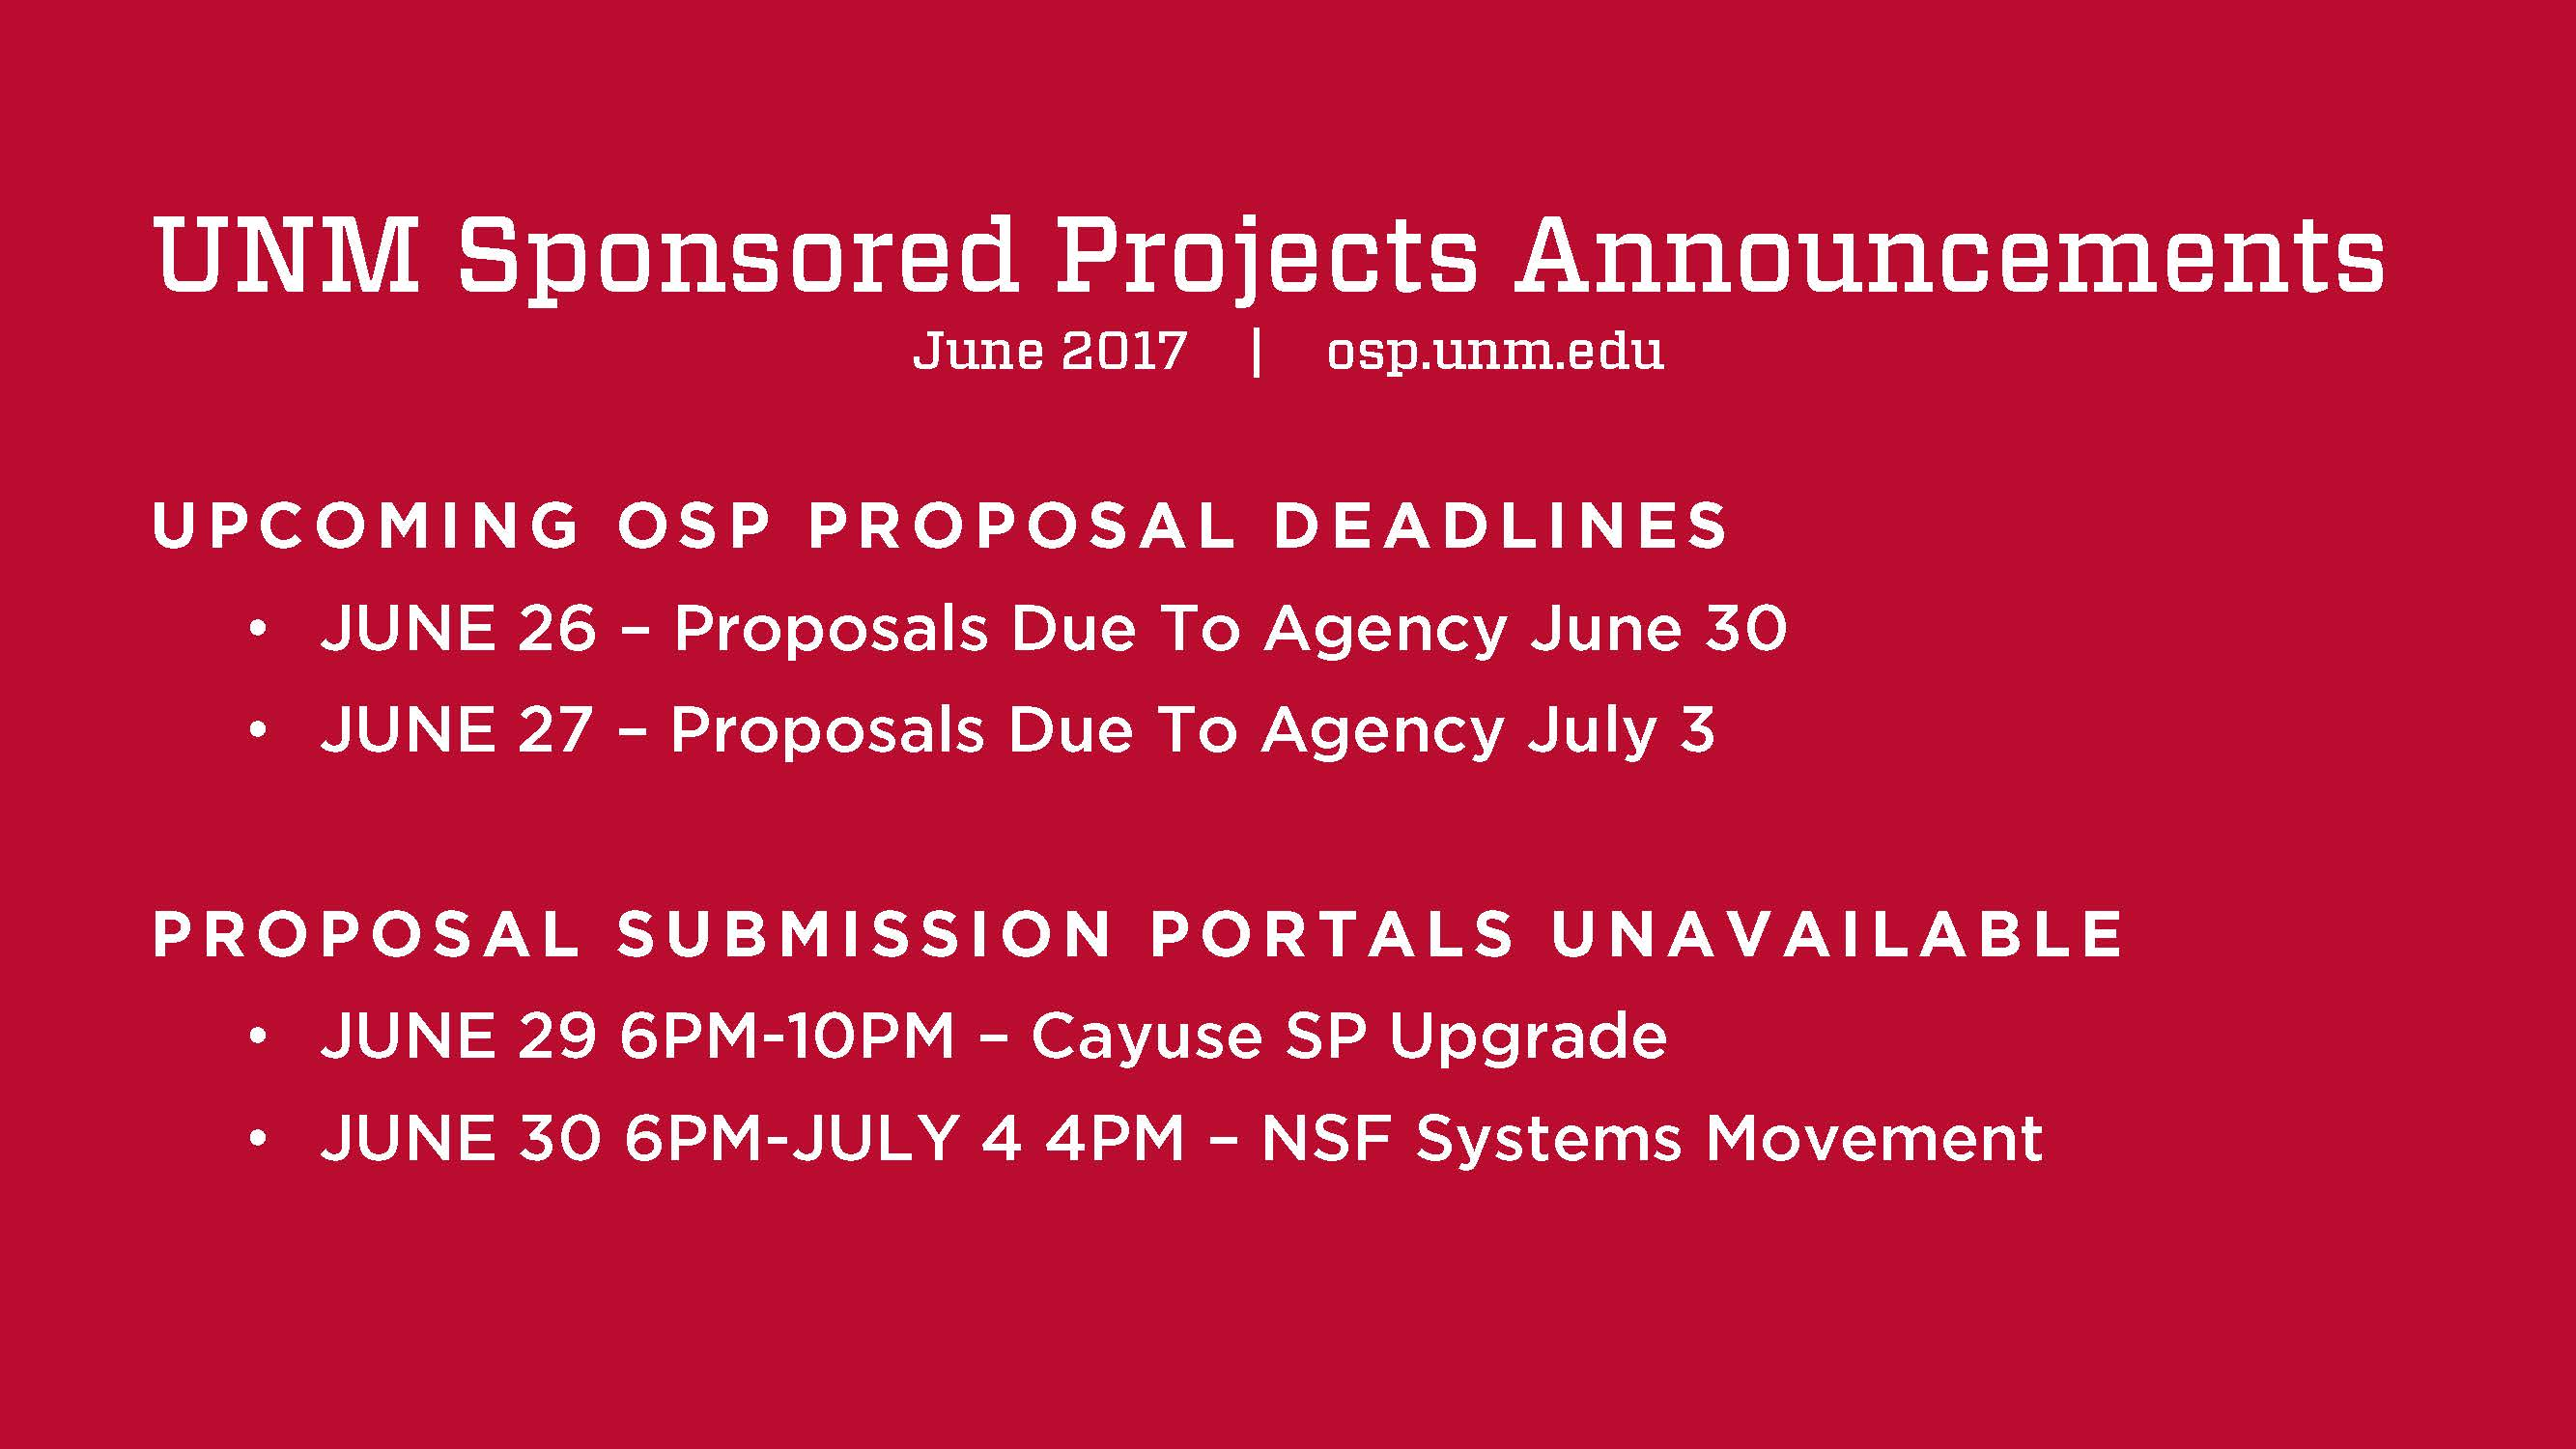 UNM Sponsored Projects Announcment